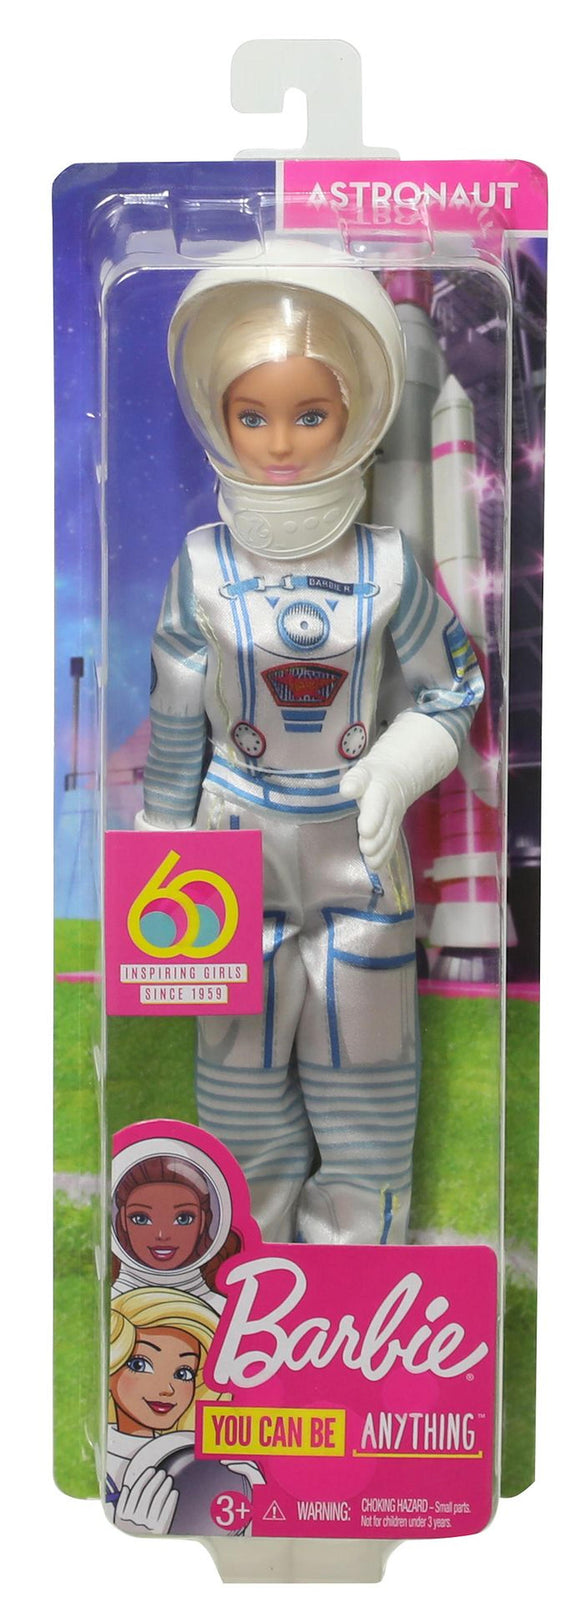 a photo of the product: Barbie I Can Be - Astronaut